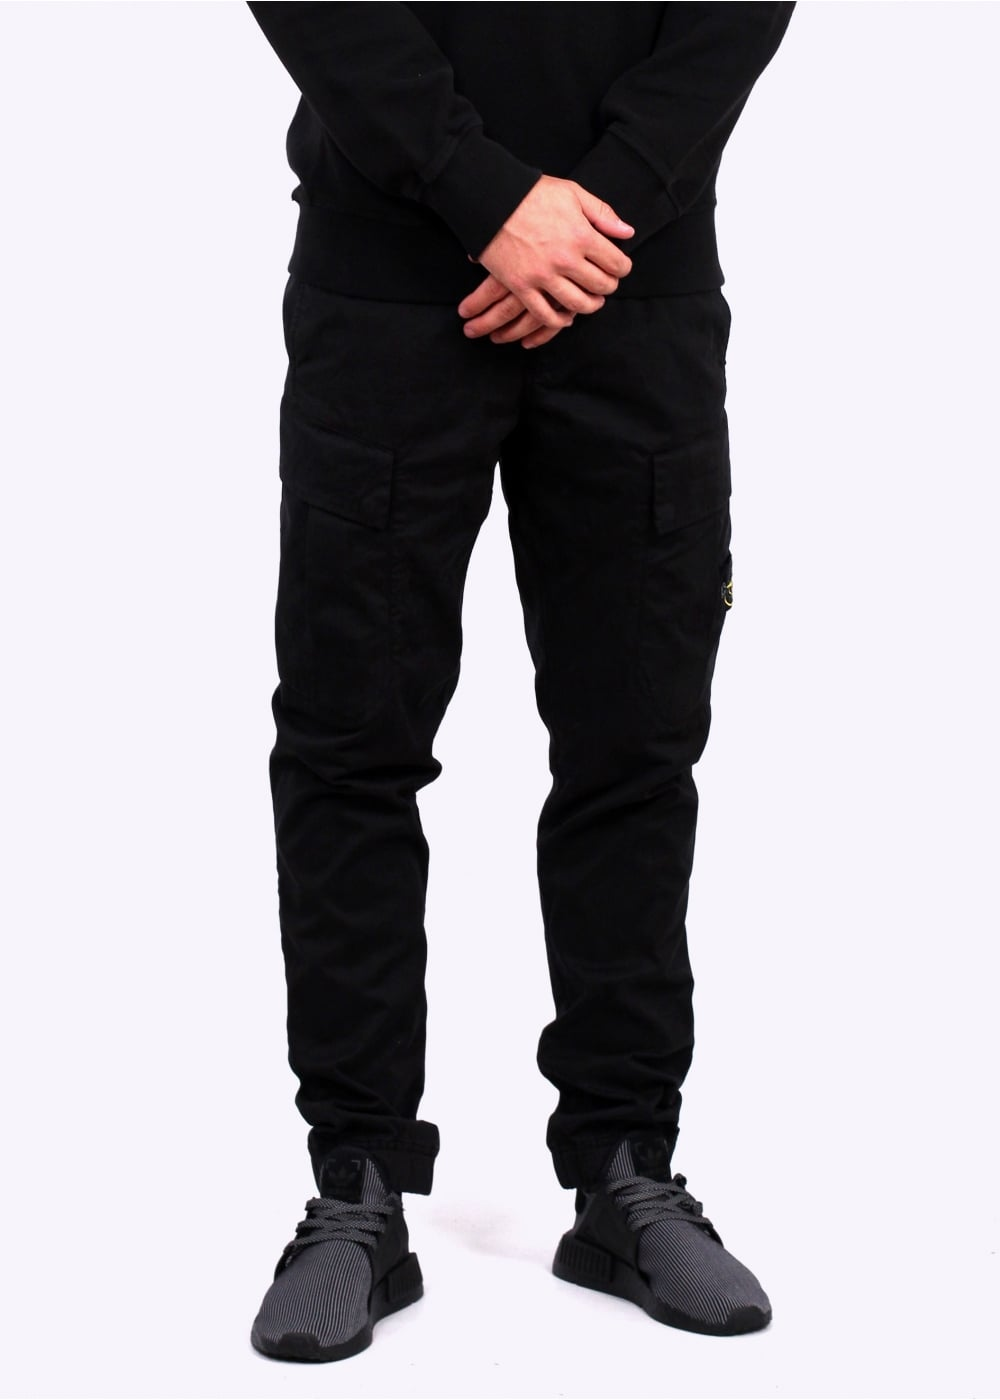 Discover men's trousers & chinos on sale at ASOS. Choose from the latest collection of trousers & chinos for men and shop your favourite items on sale. ASOS DESIGN slim trousers in black with white & yellow side stripe. Jack and Jones Cuffed Slim Fit Jogger.